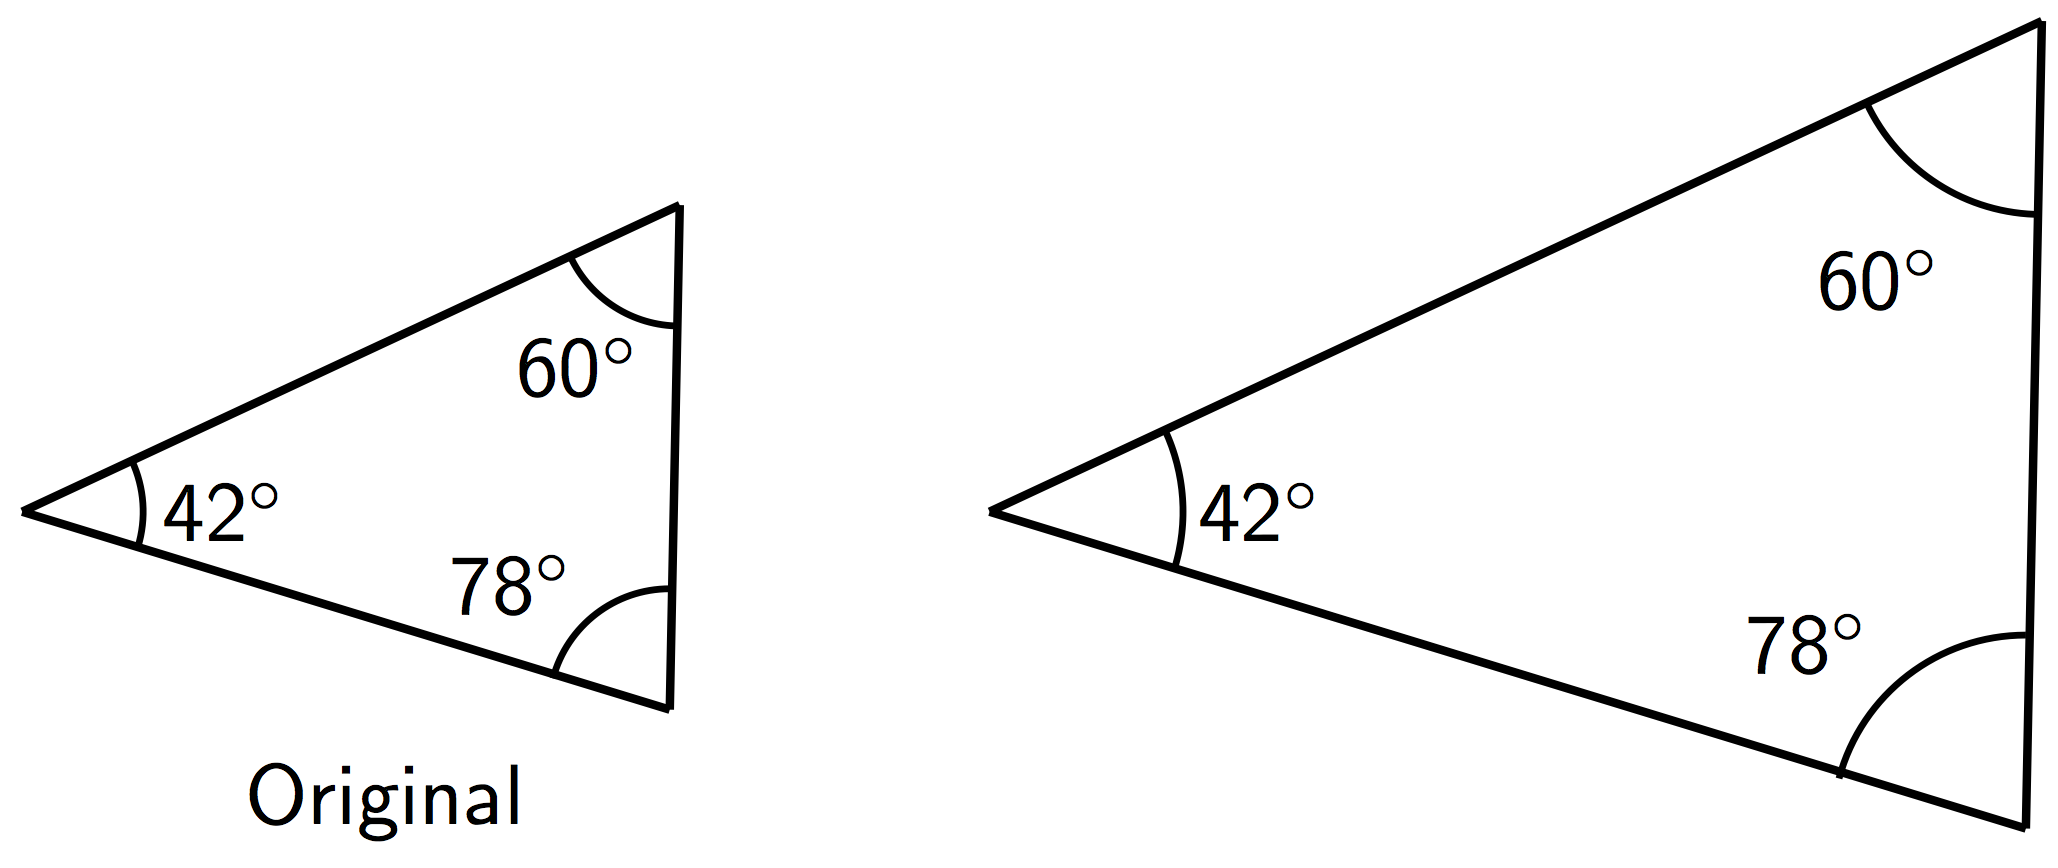 Original triangle has angle measures 42, 60, and 78 degrees. The larger, scaled version of the triangle has angle measures 42, 60, and 78 degrees.